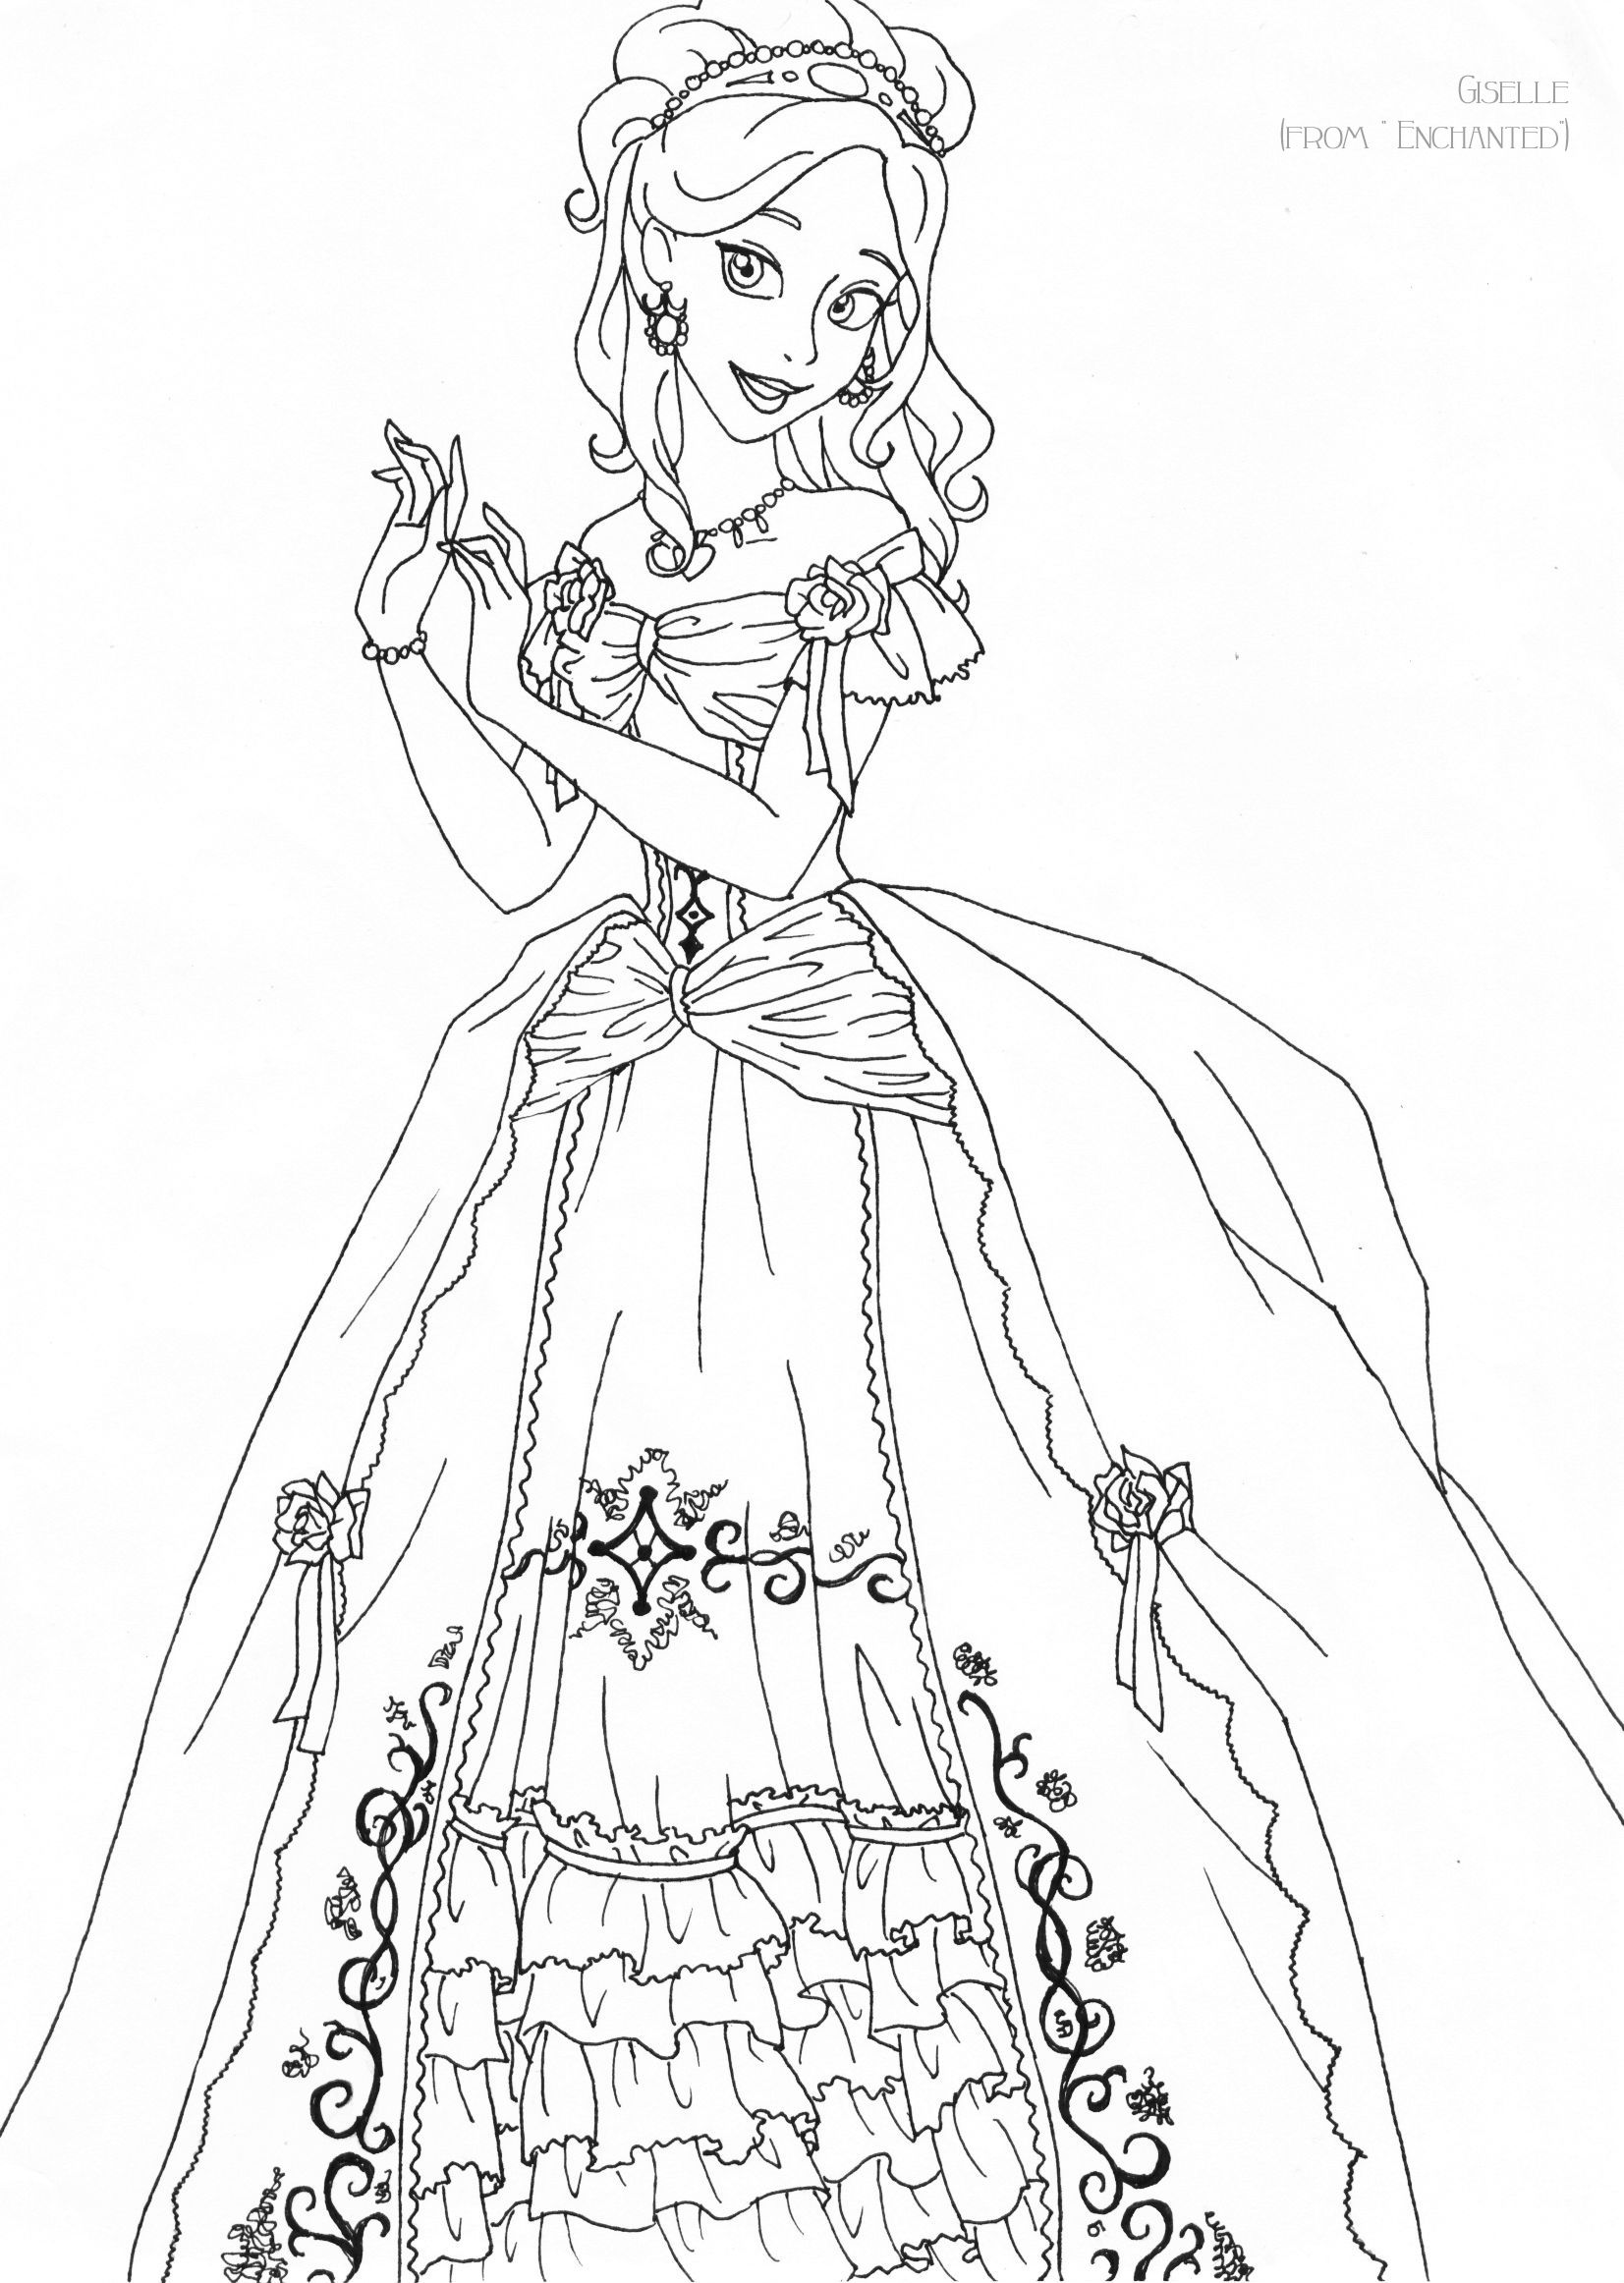 Giselle deluxe gown lineart by LadyAmber.deviantart.com on ...